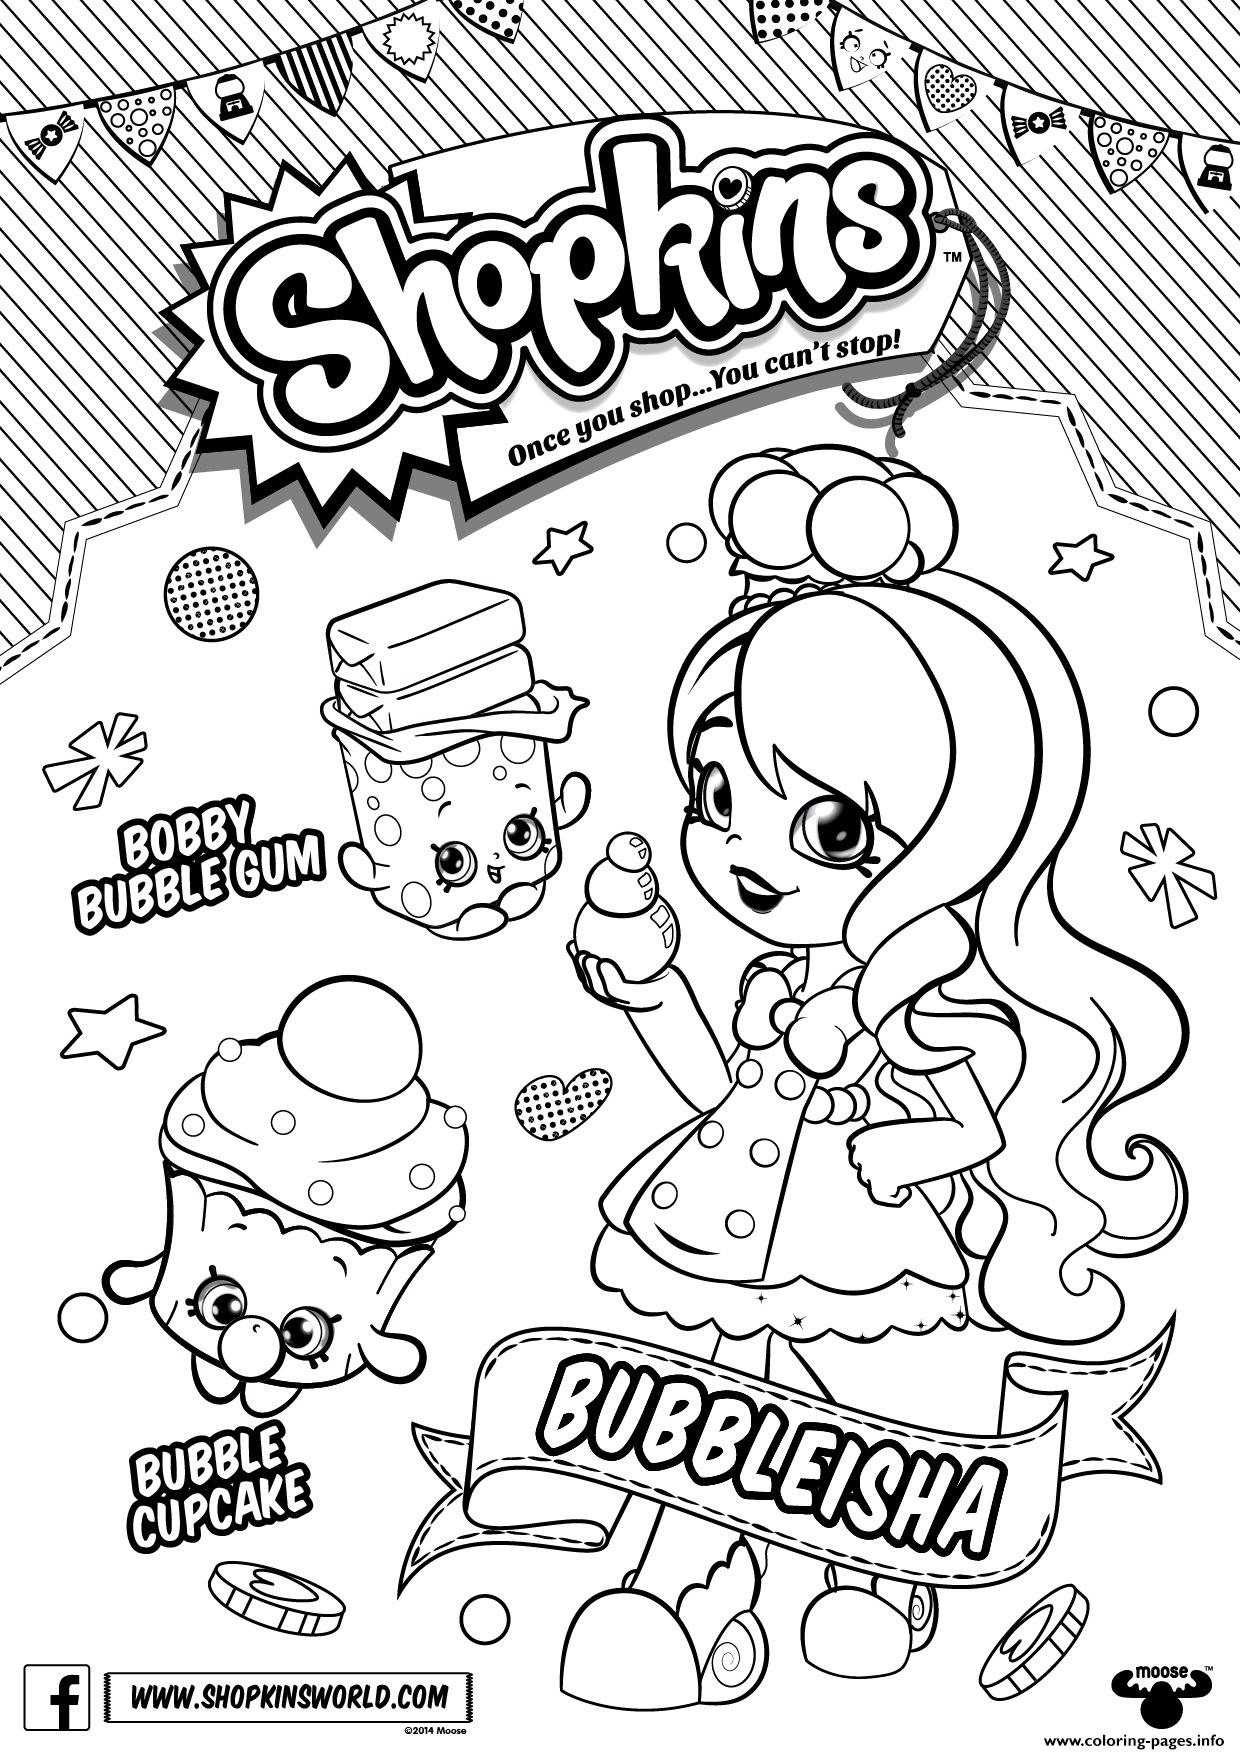 1240x1754 New Shopkins Coloring Pages To Print Out